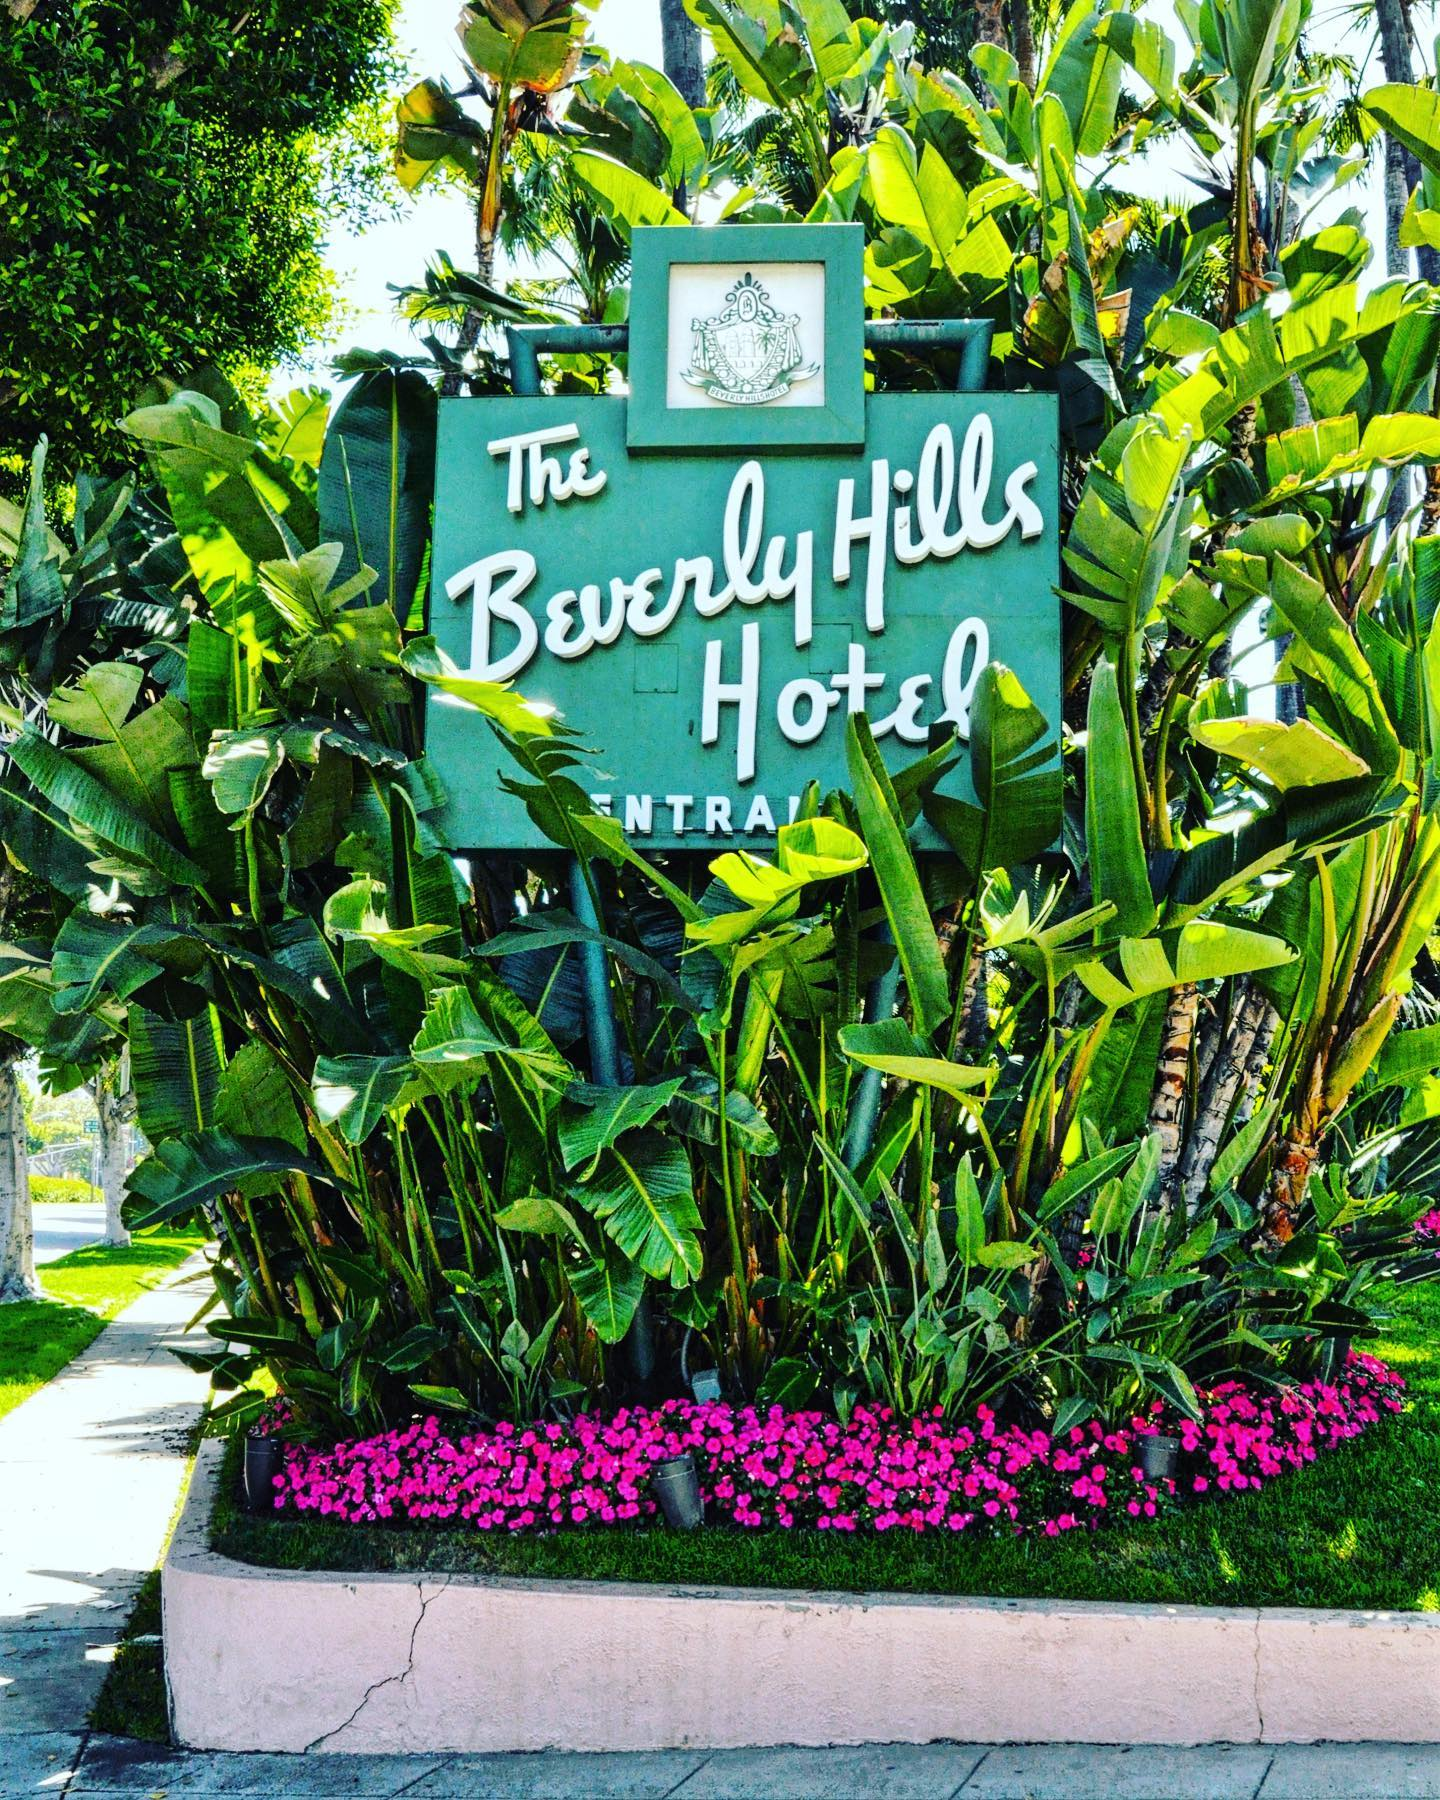 The Beverly Hills Hotel, LA, California  By far not the coolest hotel in LA, but certainly one of the most prestigious places. #usa #usatravel #usatraveler #california #la #losangeles #losangelesworld #cityofangeles #citytrip #cityphotography #citylove #hotel #worldhotels #beverlyhills #lalife #beverlyhillshotel #travelgram #travelblog #travelblogger #reiseblog #reiseblogger